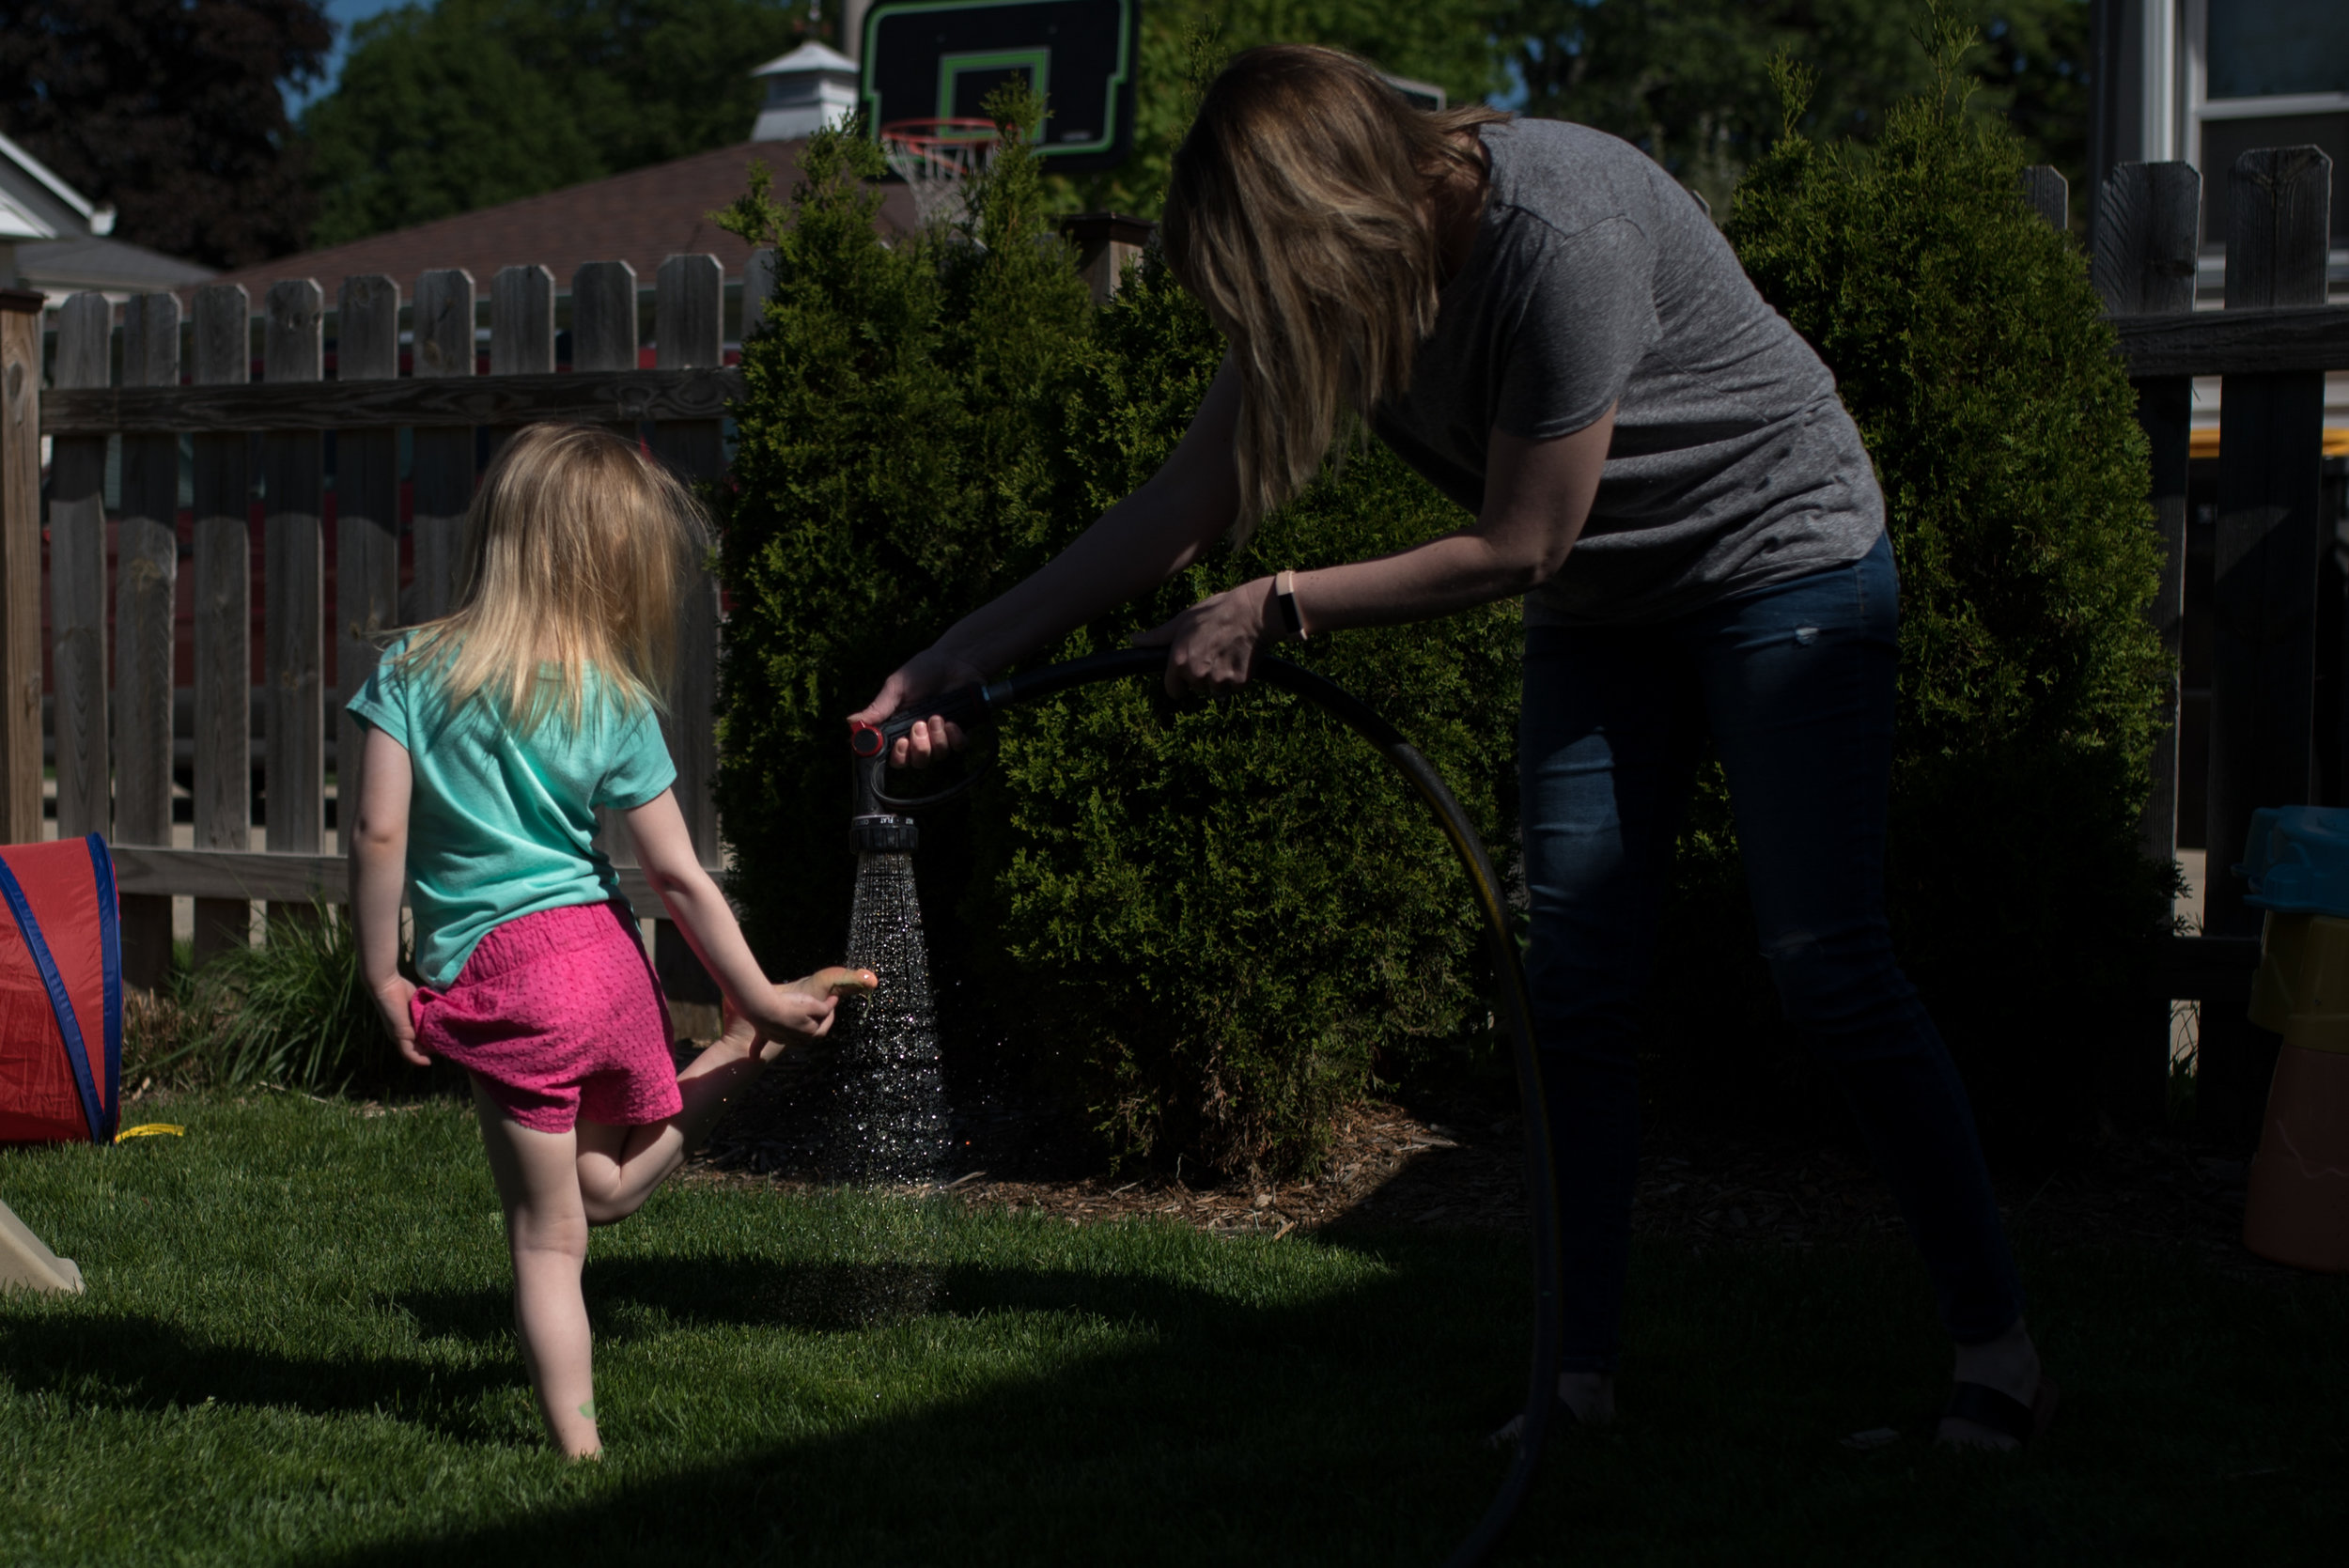 Daughter getting grassy feet sprayed off by hose in yard during Wauwatosa Photography session